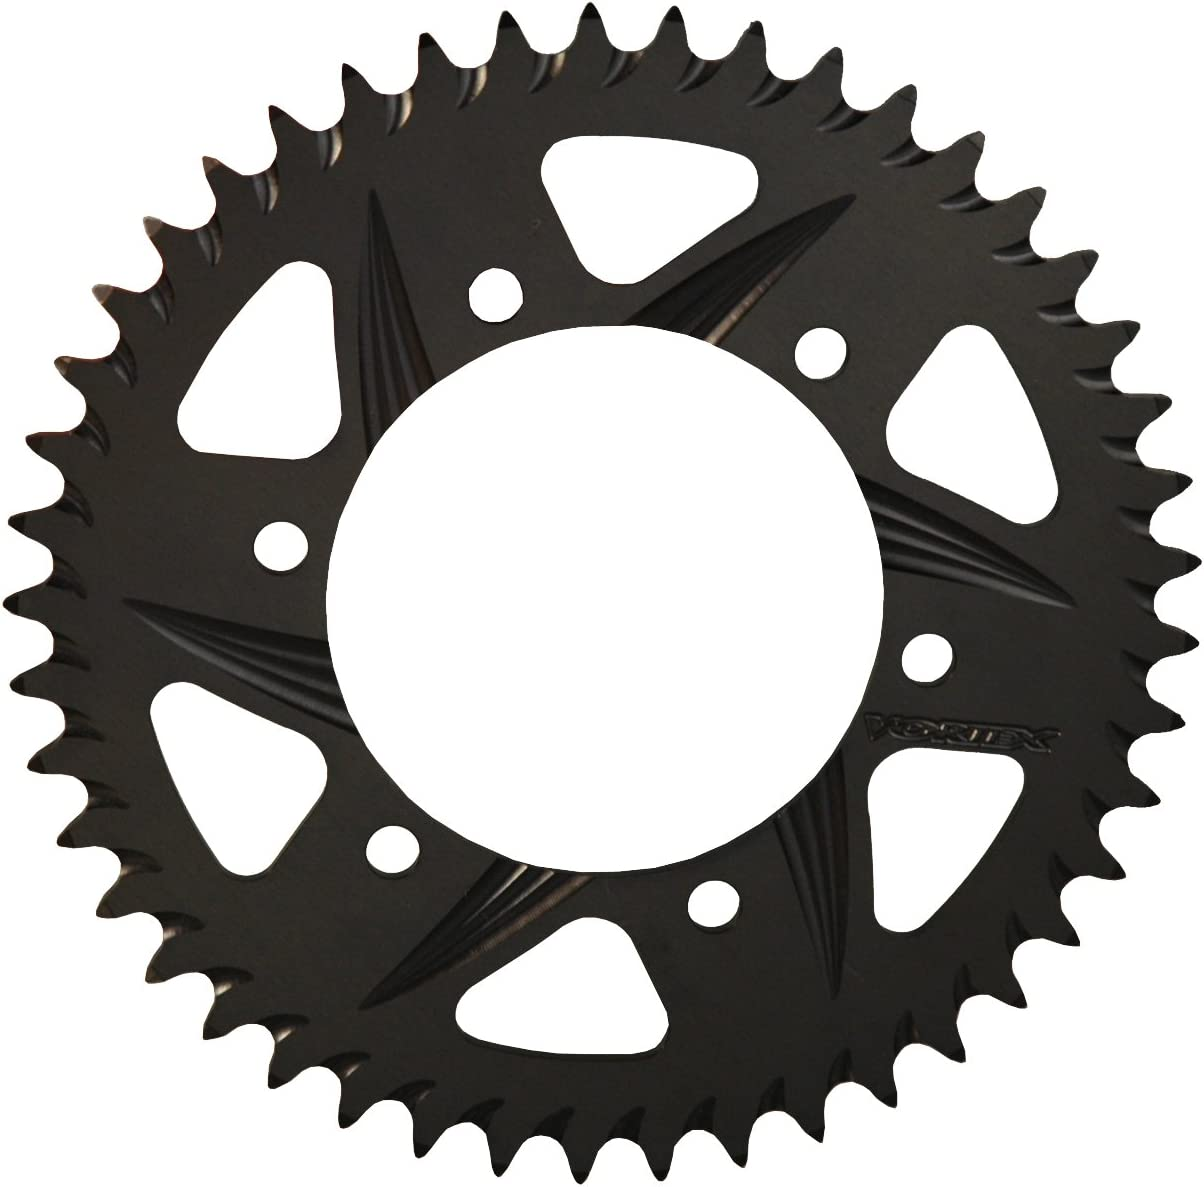 Vortex 526AK-43 43-Tooth 520-Pitch Hardcoat Rear Sprocket